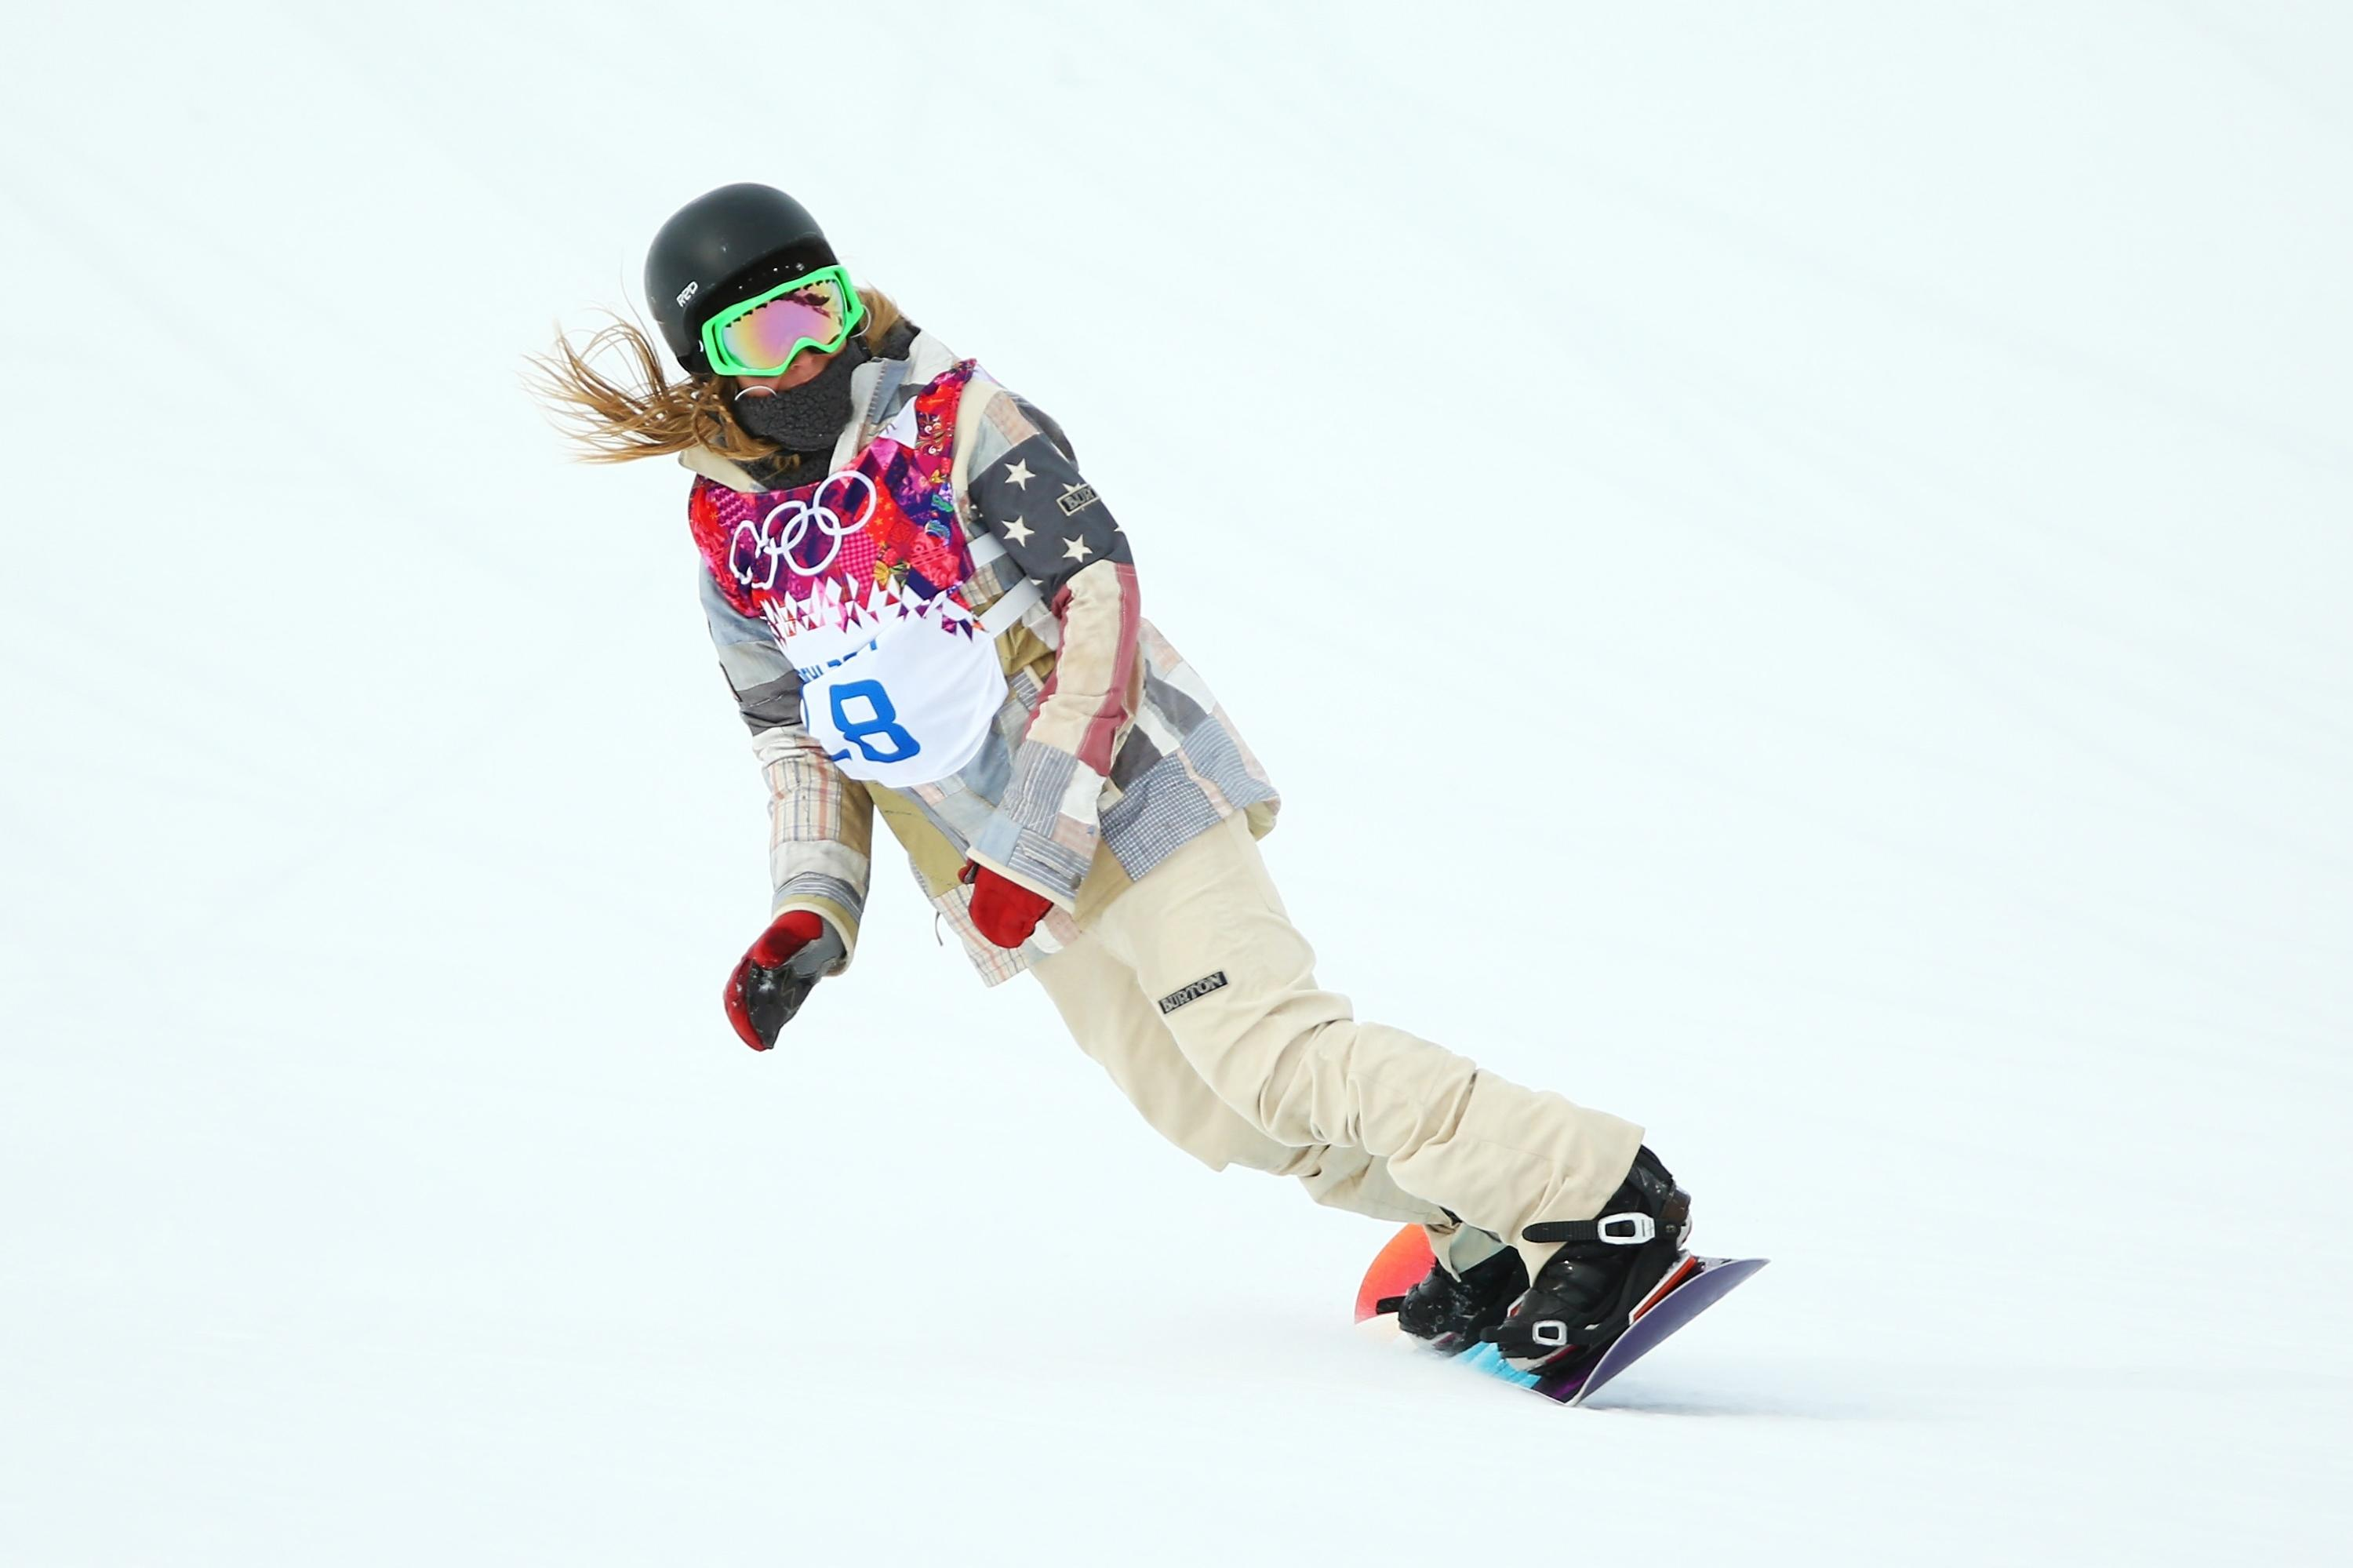 Jamie Anderson gives U.S. sweep of slopestyle gold medals ...